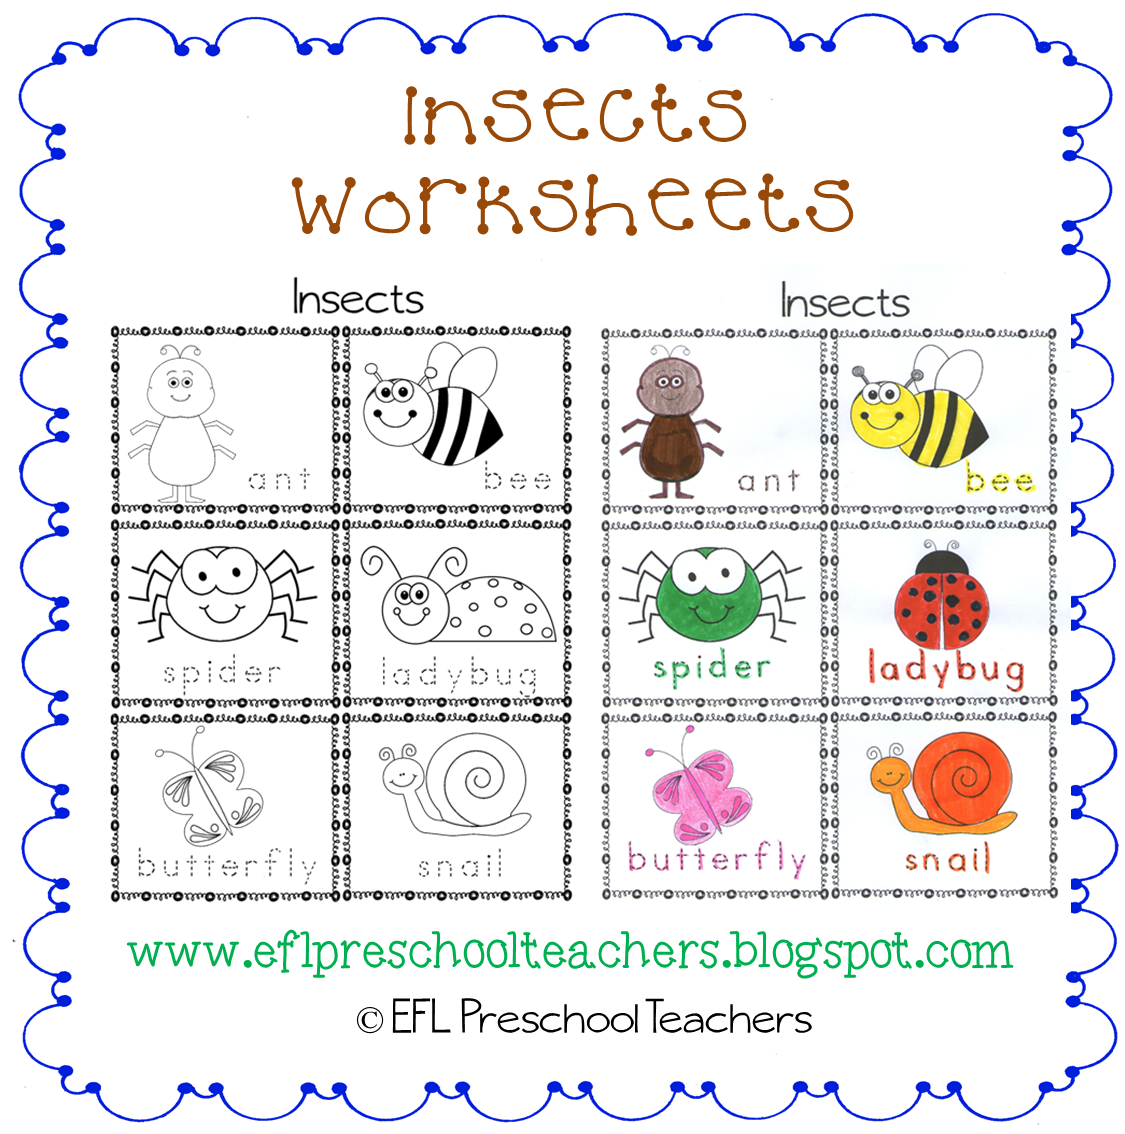 esl efl preschool teachers insects worksheets and more for